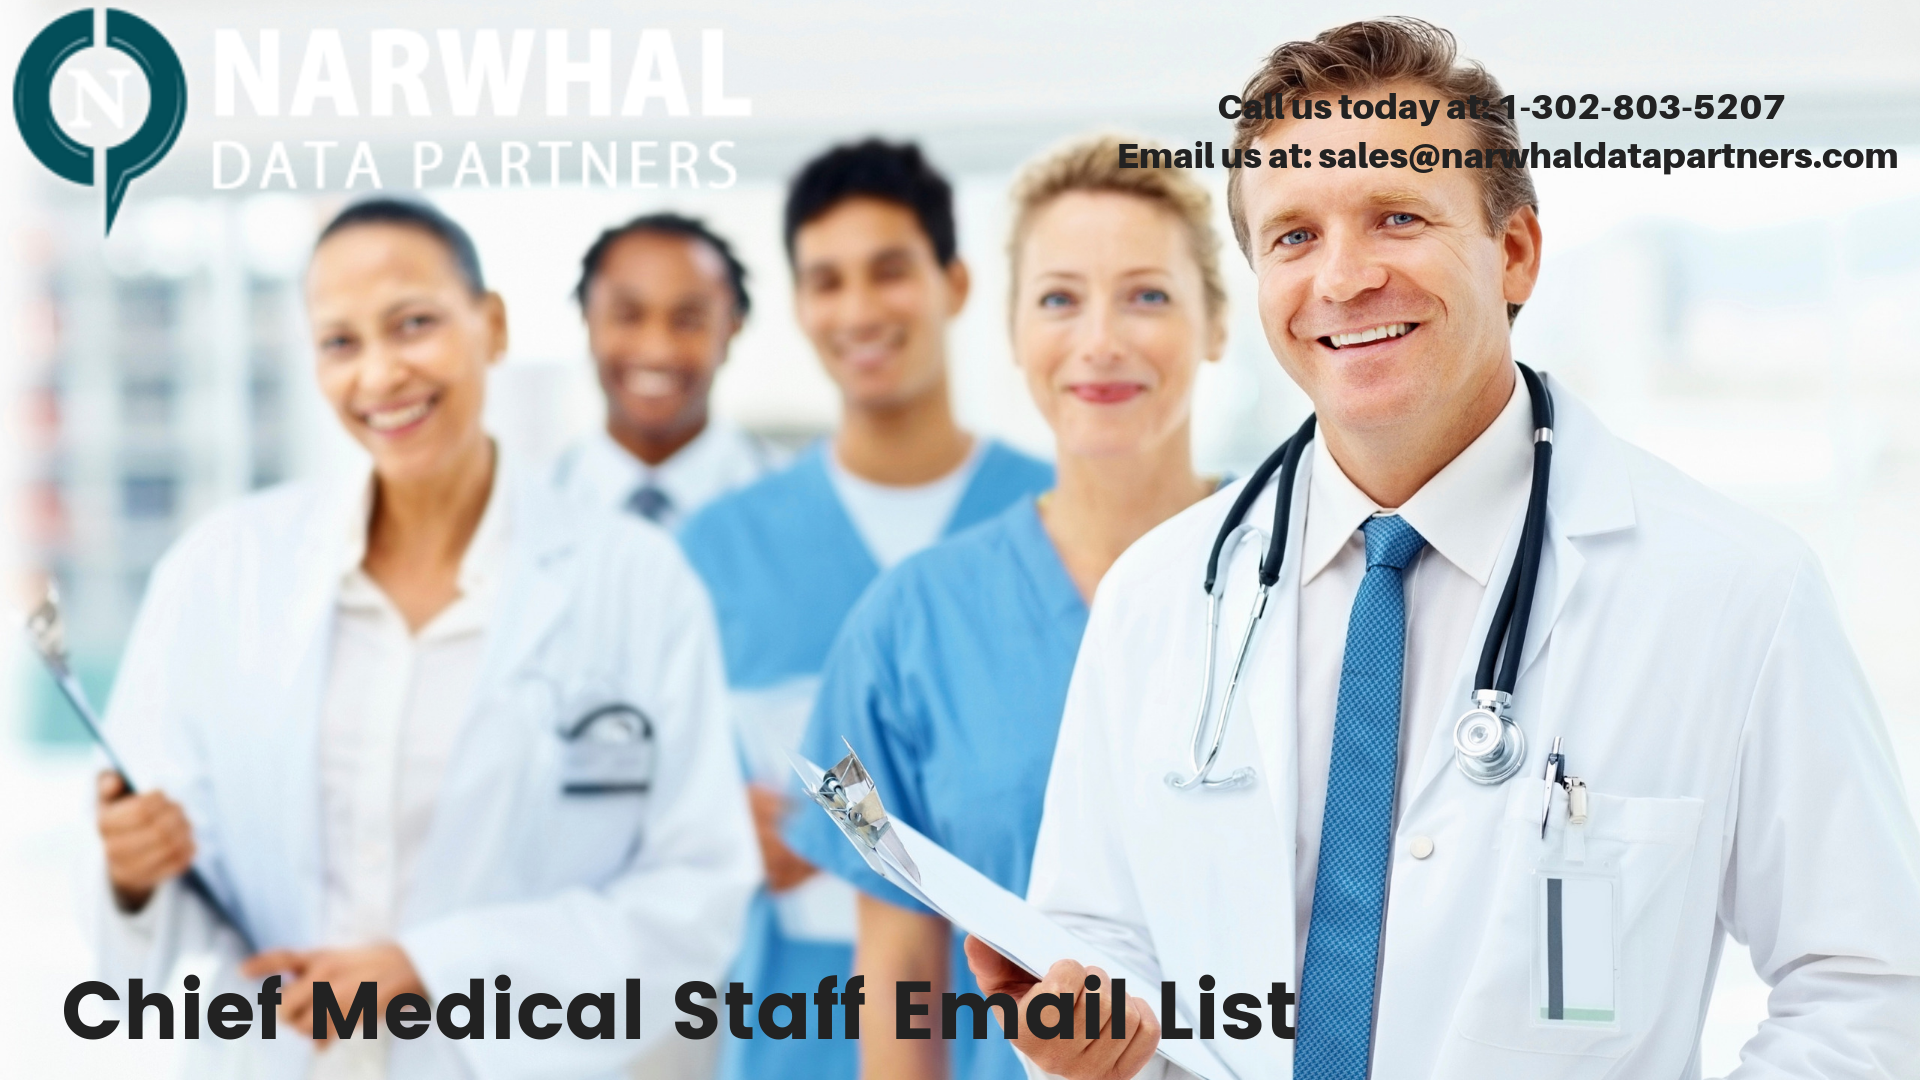 http://narwhaldatapartners.com/chief-medical-staff-email-list.html